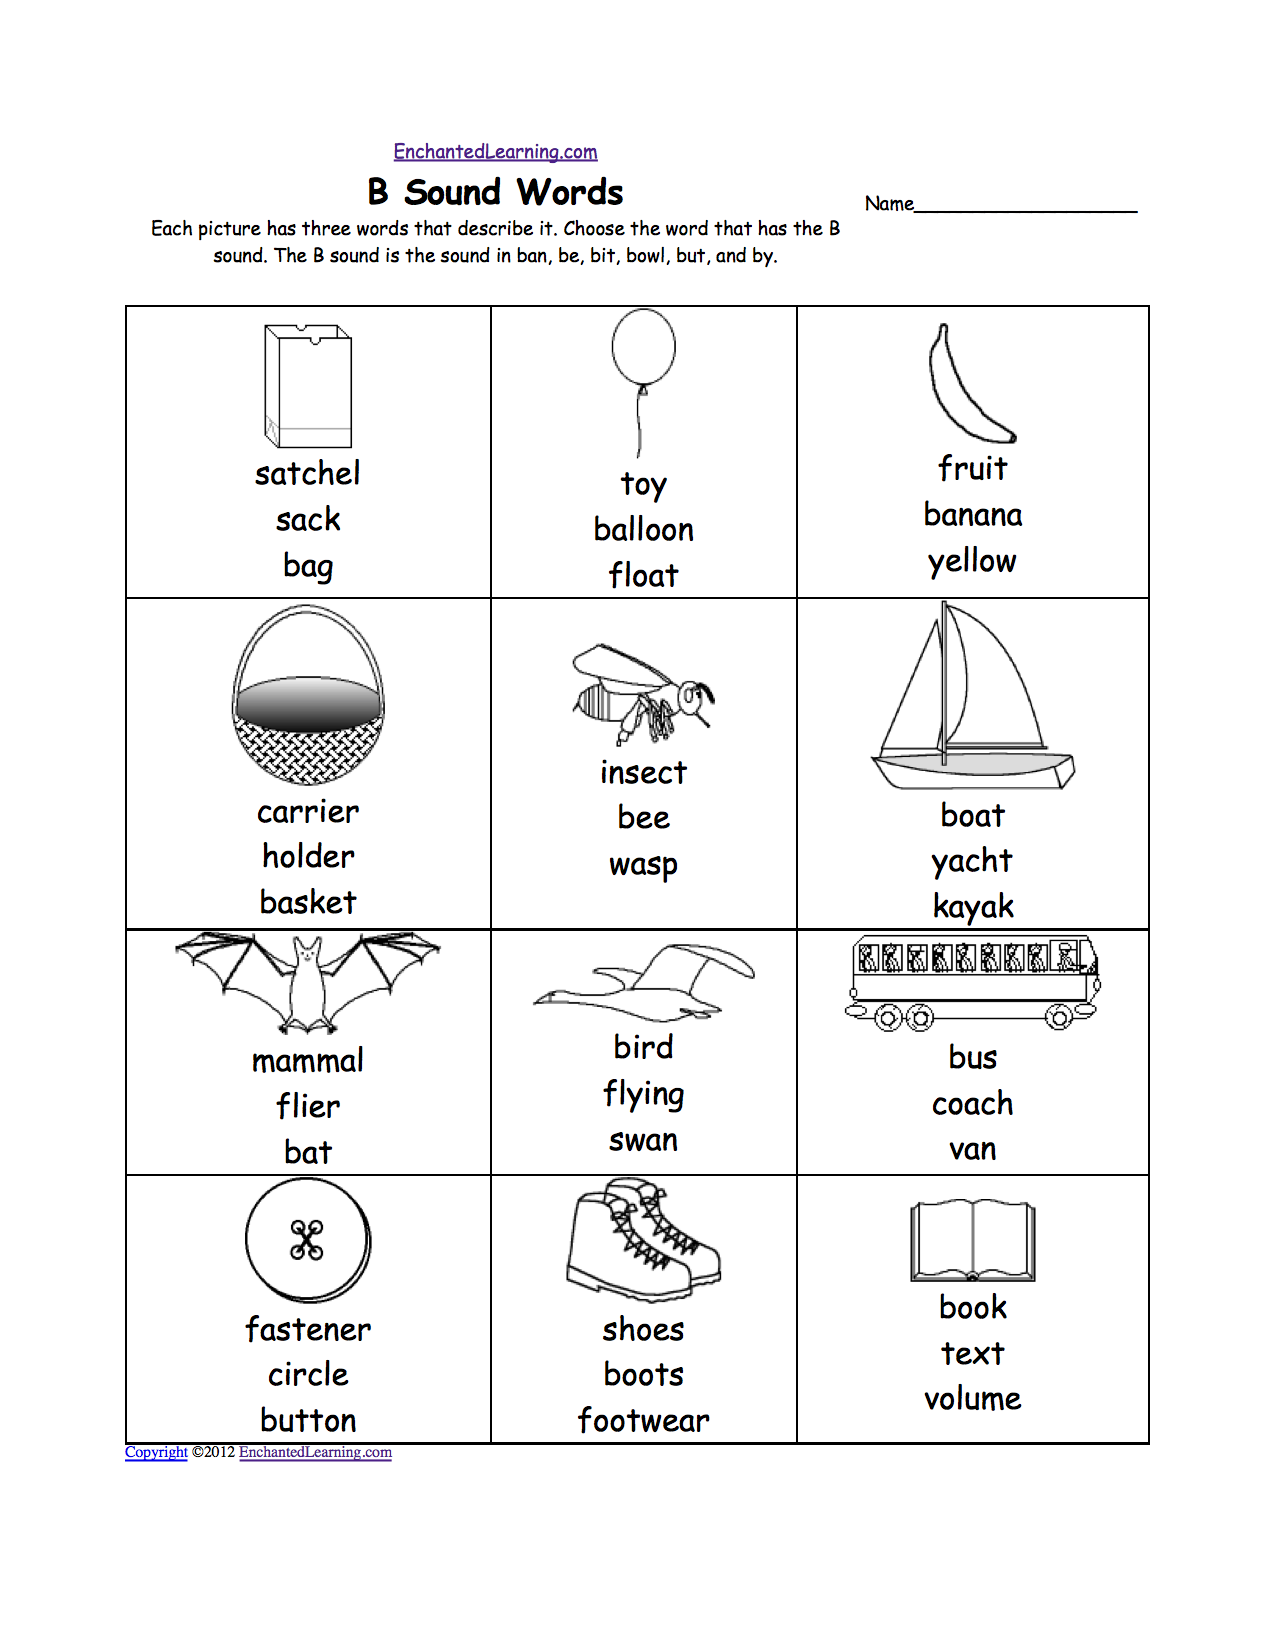 Weirdmailus  Wonderful Phonics Worksheets Multiple Choice Worksheets To Print  With Remarkable Quotbquot Sound Phonics Worksheet Multiple Choice Each Picture Has Three Words That Describe It Choose The Word That Has A Quotbquot Sound The Quotbquot Sound Is The Sound  With Cool Time Worksheets Printables Also Mathematics Addition Worksheets In Addition Subject Verb Agreement Worksheets For Grade  And Heart Structure And Function Worksheet As Well As Graphs Charts And Tables Worksheets Additionally Picture Graph Worksheets For Kindergarten From Enchantedlearningcom With Weirdmailus  Remarkable Phonics Worksheets Multiple Choice Worksheets To Print  With Cool Quotbquot Sound Phonics Worksheet Multiple Choice Each Picture Has Three Words That Describe It Choose The Word That Has A Quotbquot Sound The Quotbquot Sound Is The Sound  And Wonderful Time Worksheets Printables Also Mathematics Addition Worksheets In Addition Subject Verb Agreement Worksheets For Grade  From Enchantedlearningcom